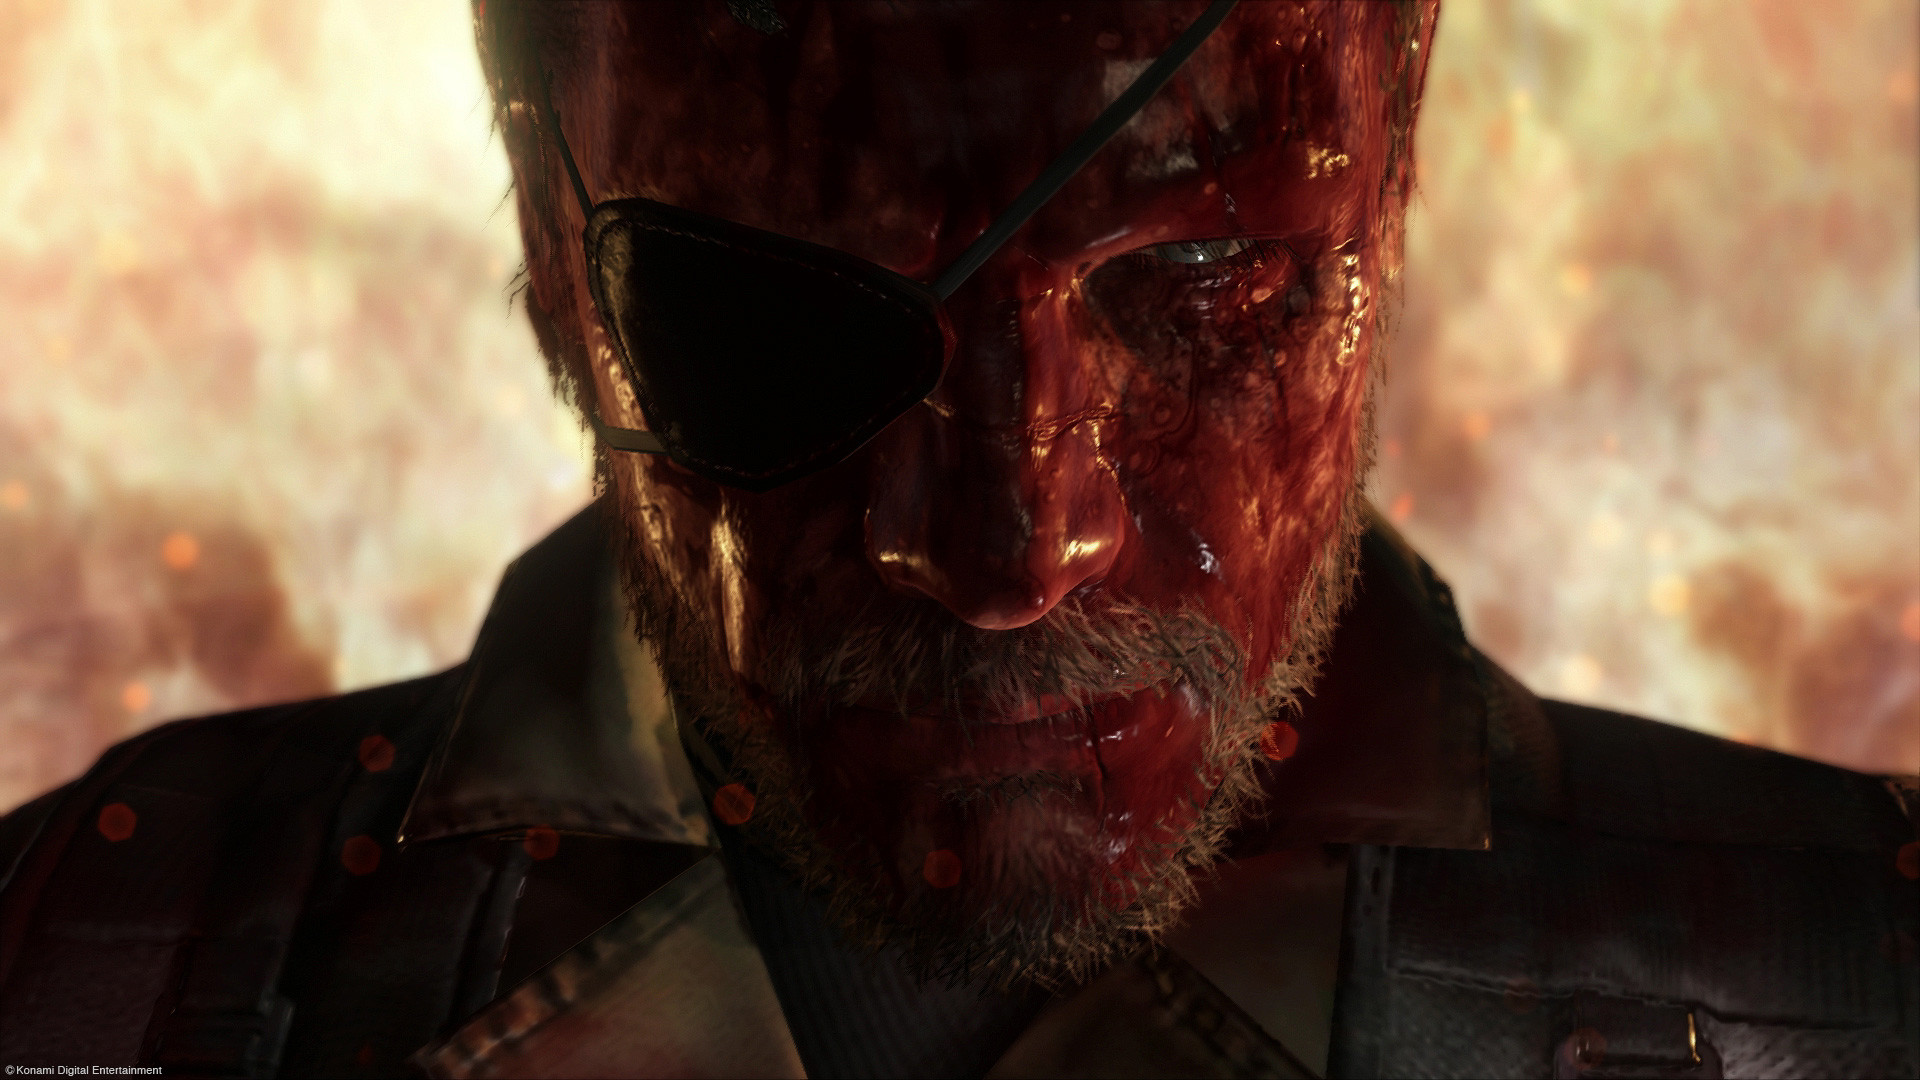 Metal Gear Solid V: The Phantom Pain Release Date Announced; I Could Tell You It In This Headline, But Where Would The Fun Be In That?